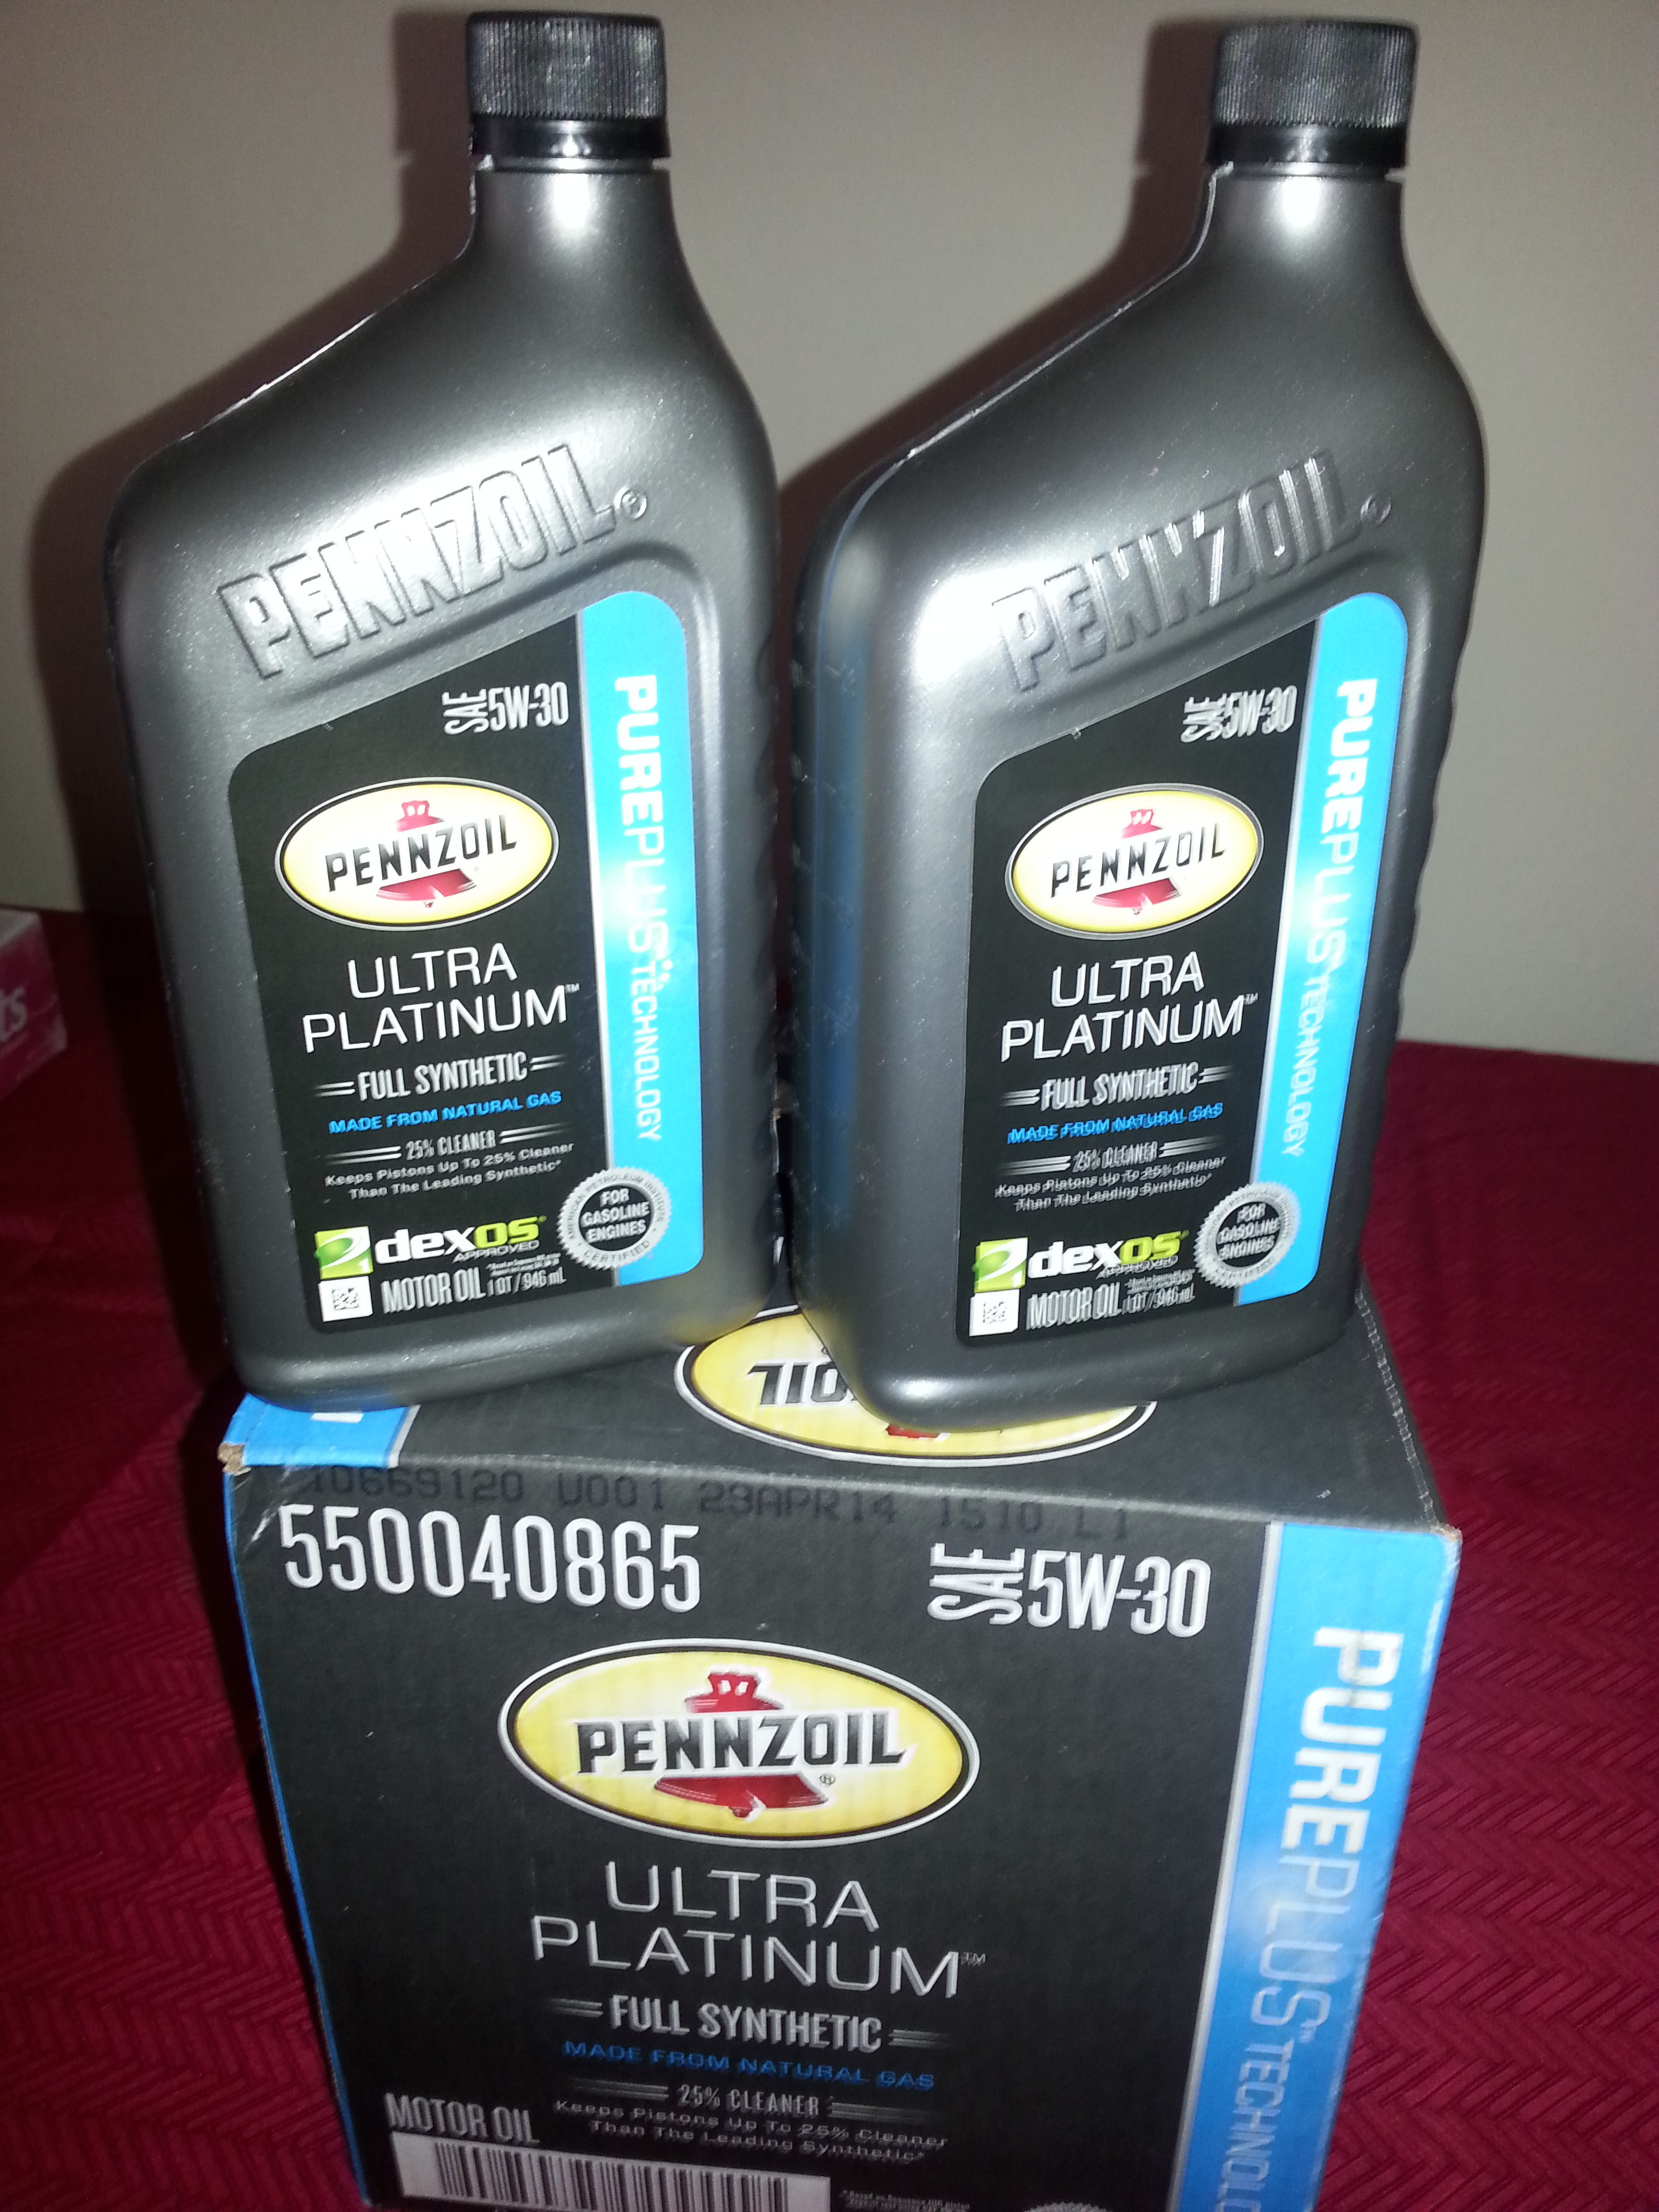 Happy Valentines Day from Pennzoil Full Synthetic Motor Oil  , the unique gift for your vehicle!